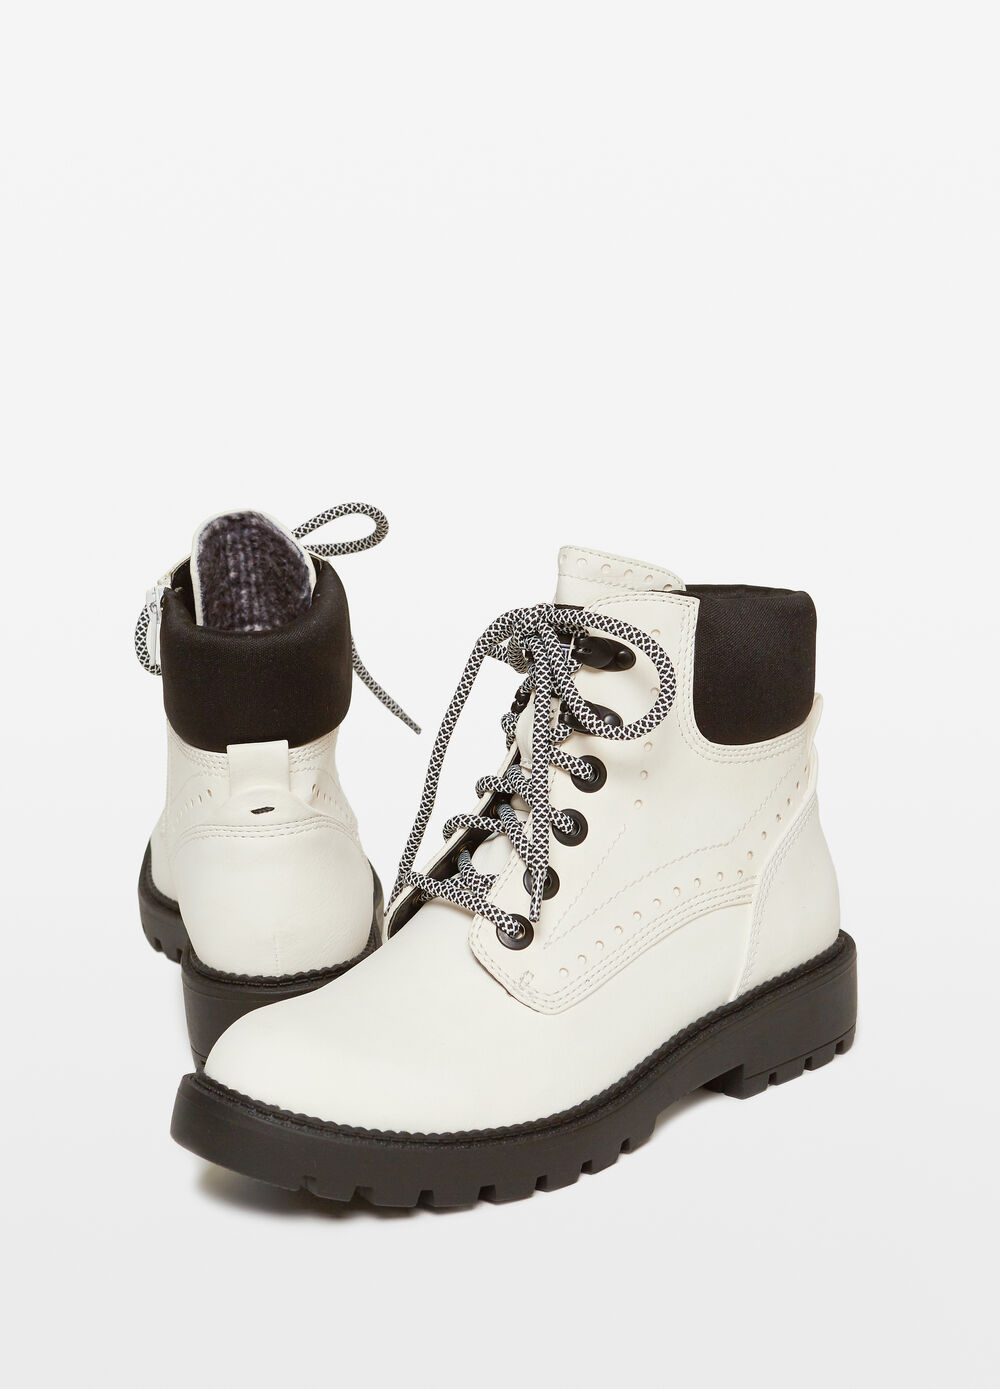 Combat boots with laces and side zips